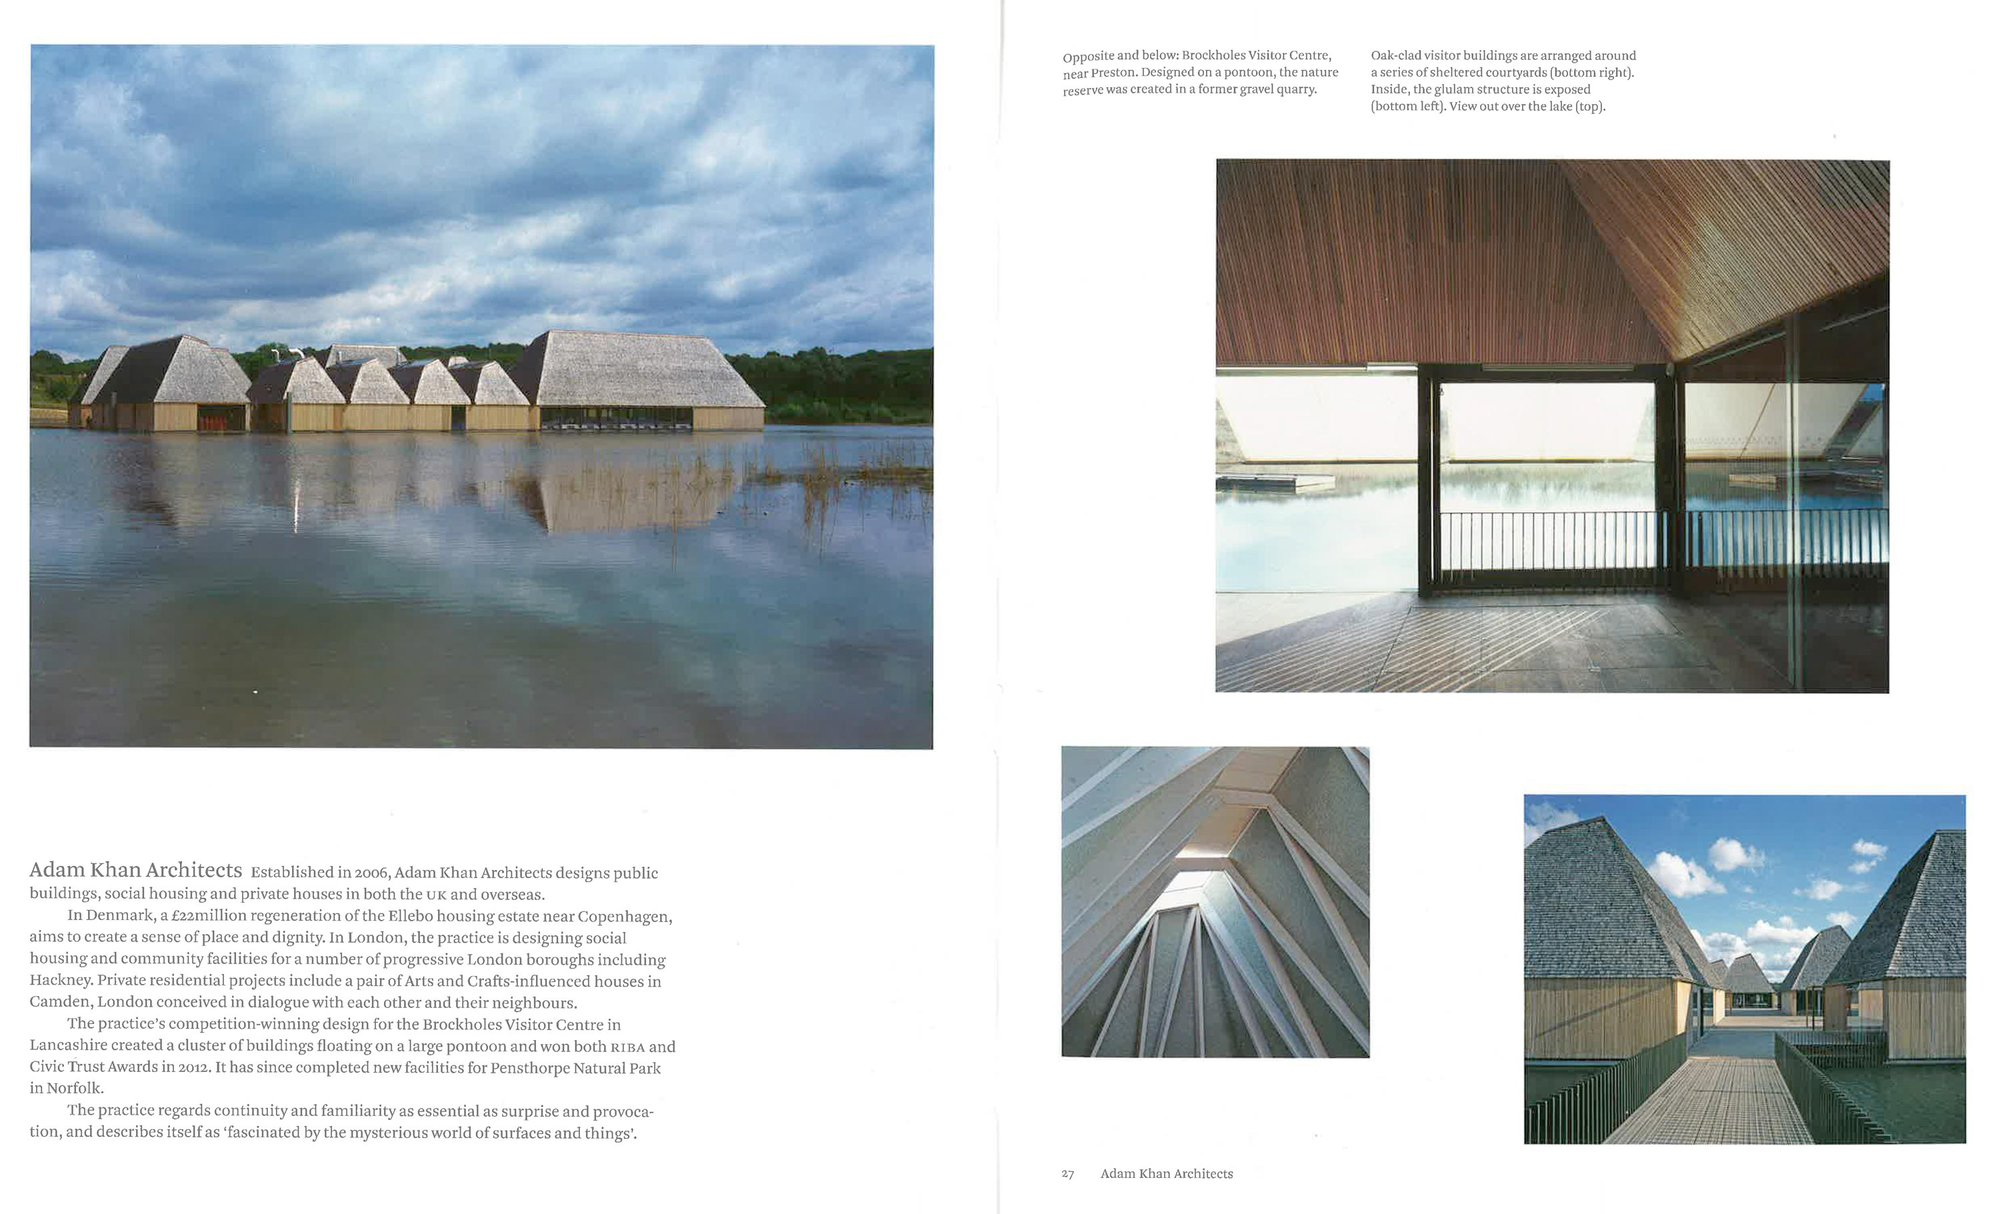 2016_NewArchitects3_pg26-27.jpg